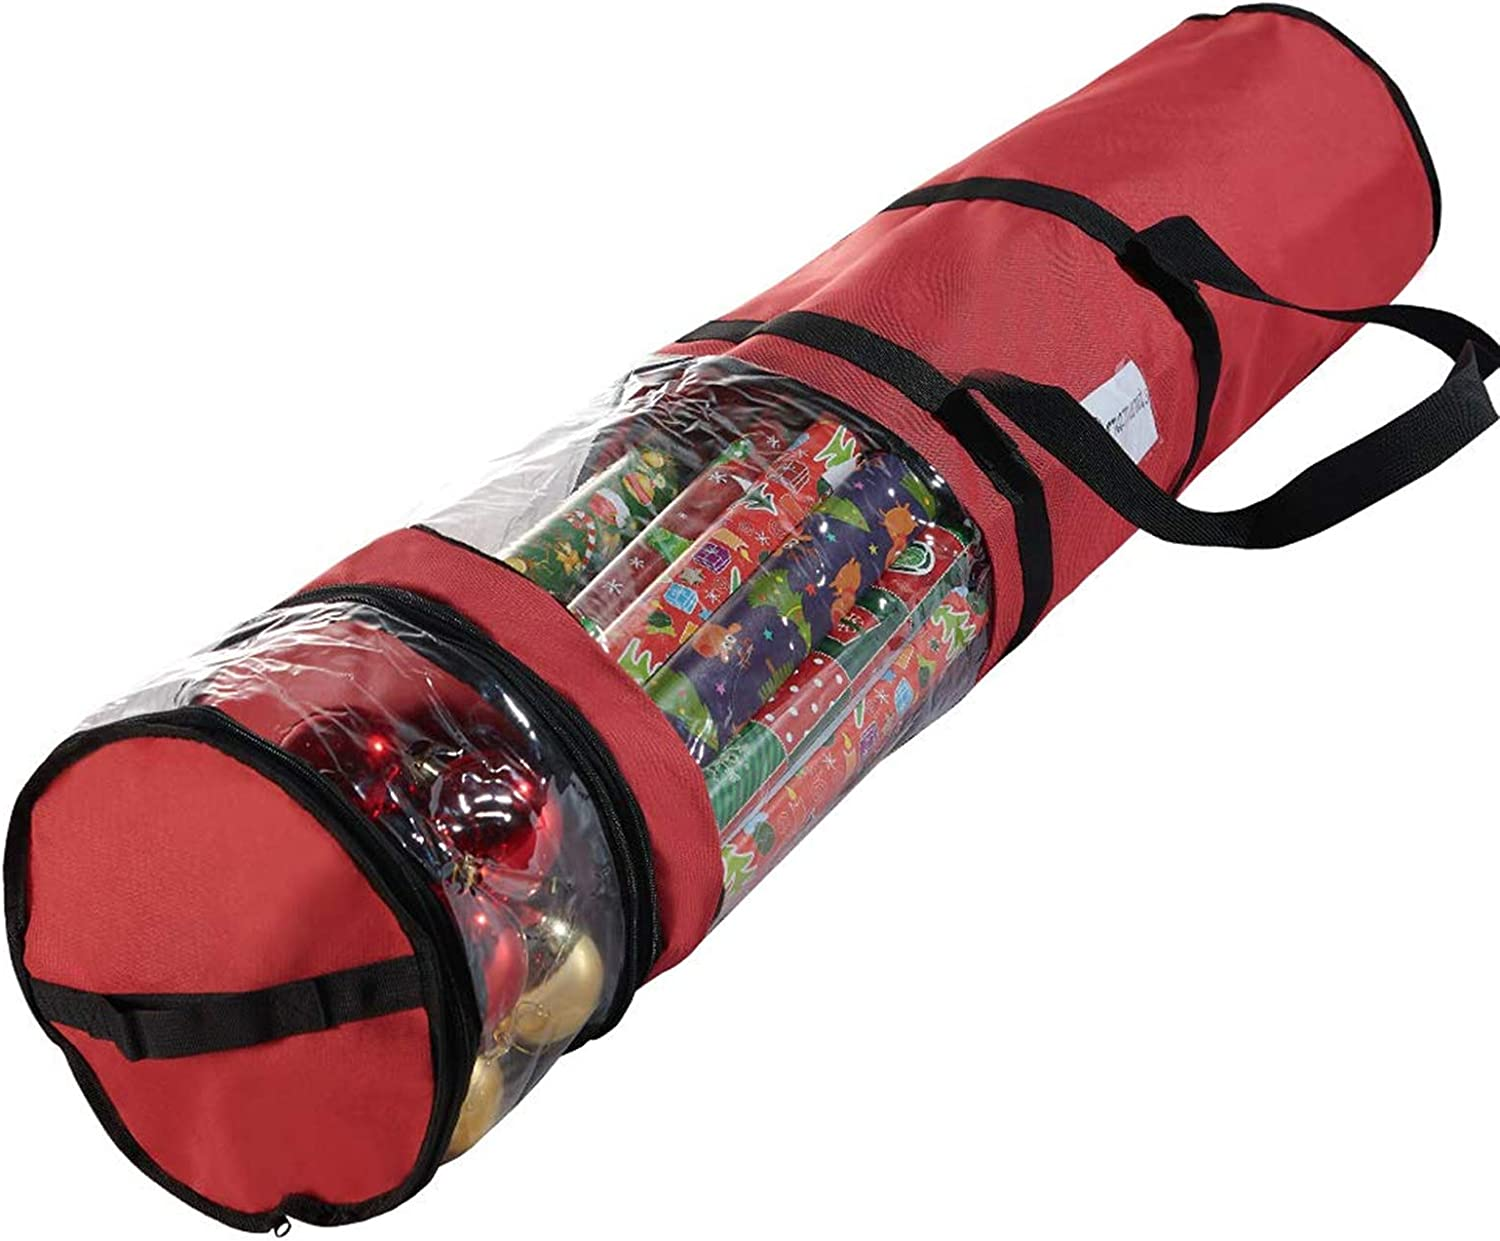 micoe Christmas Wrapping Paper Storage Max 80% Inventory cleanup selling sale OFF 20 Roll Fits - Containers